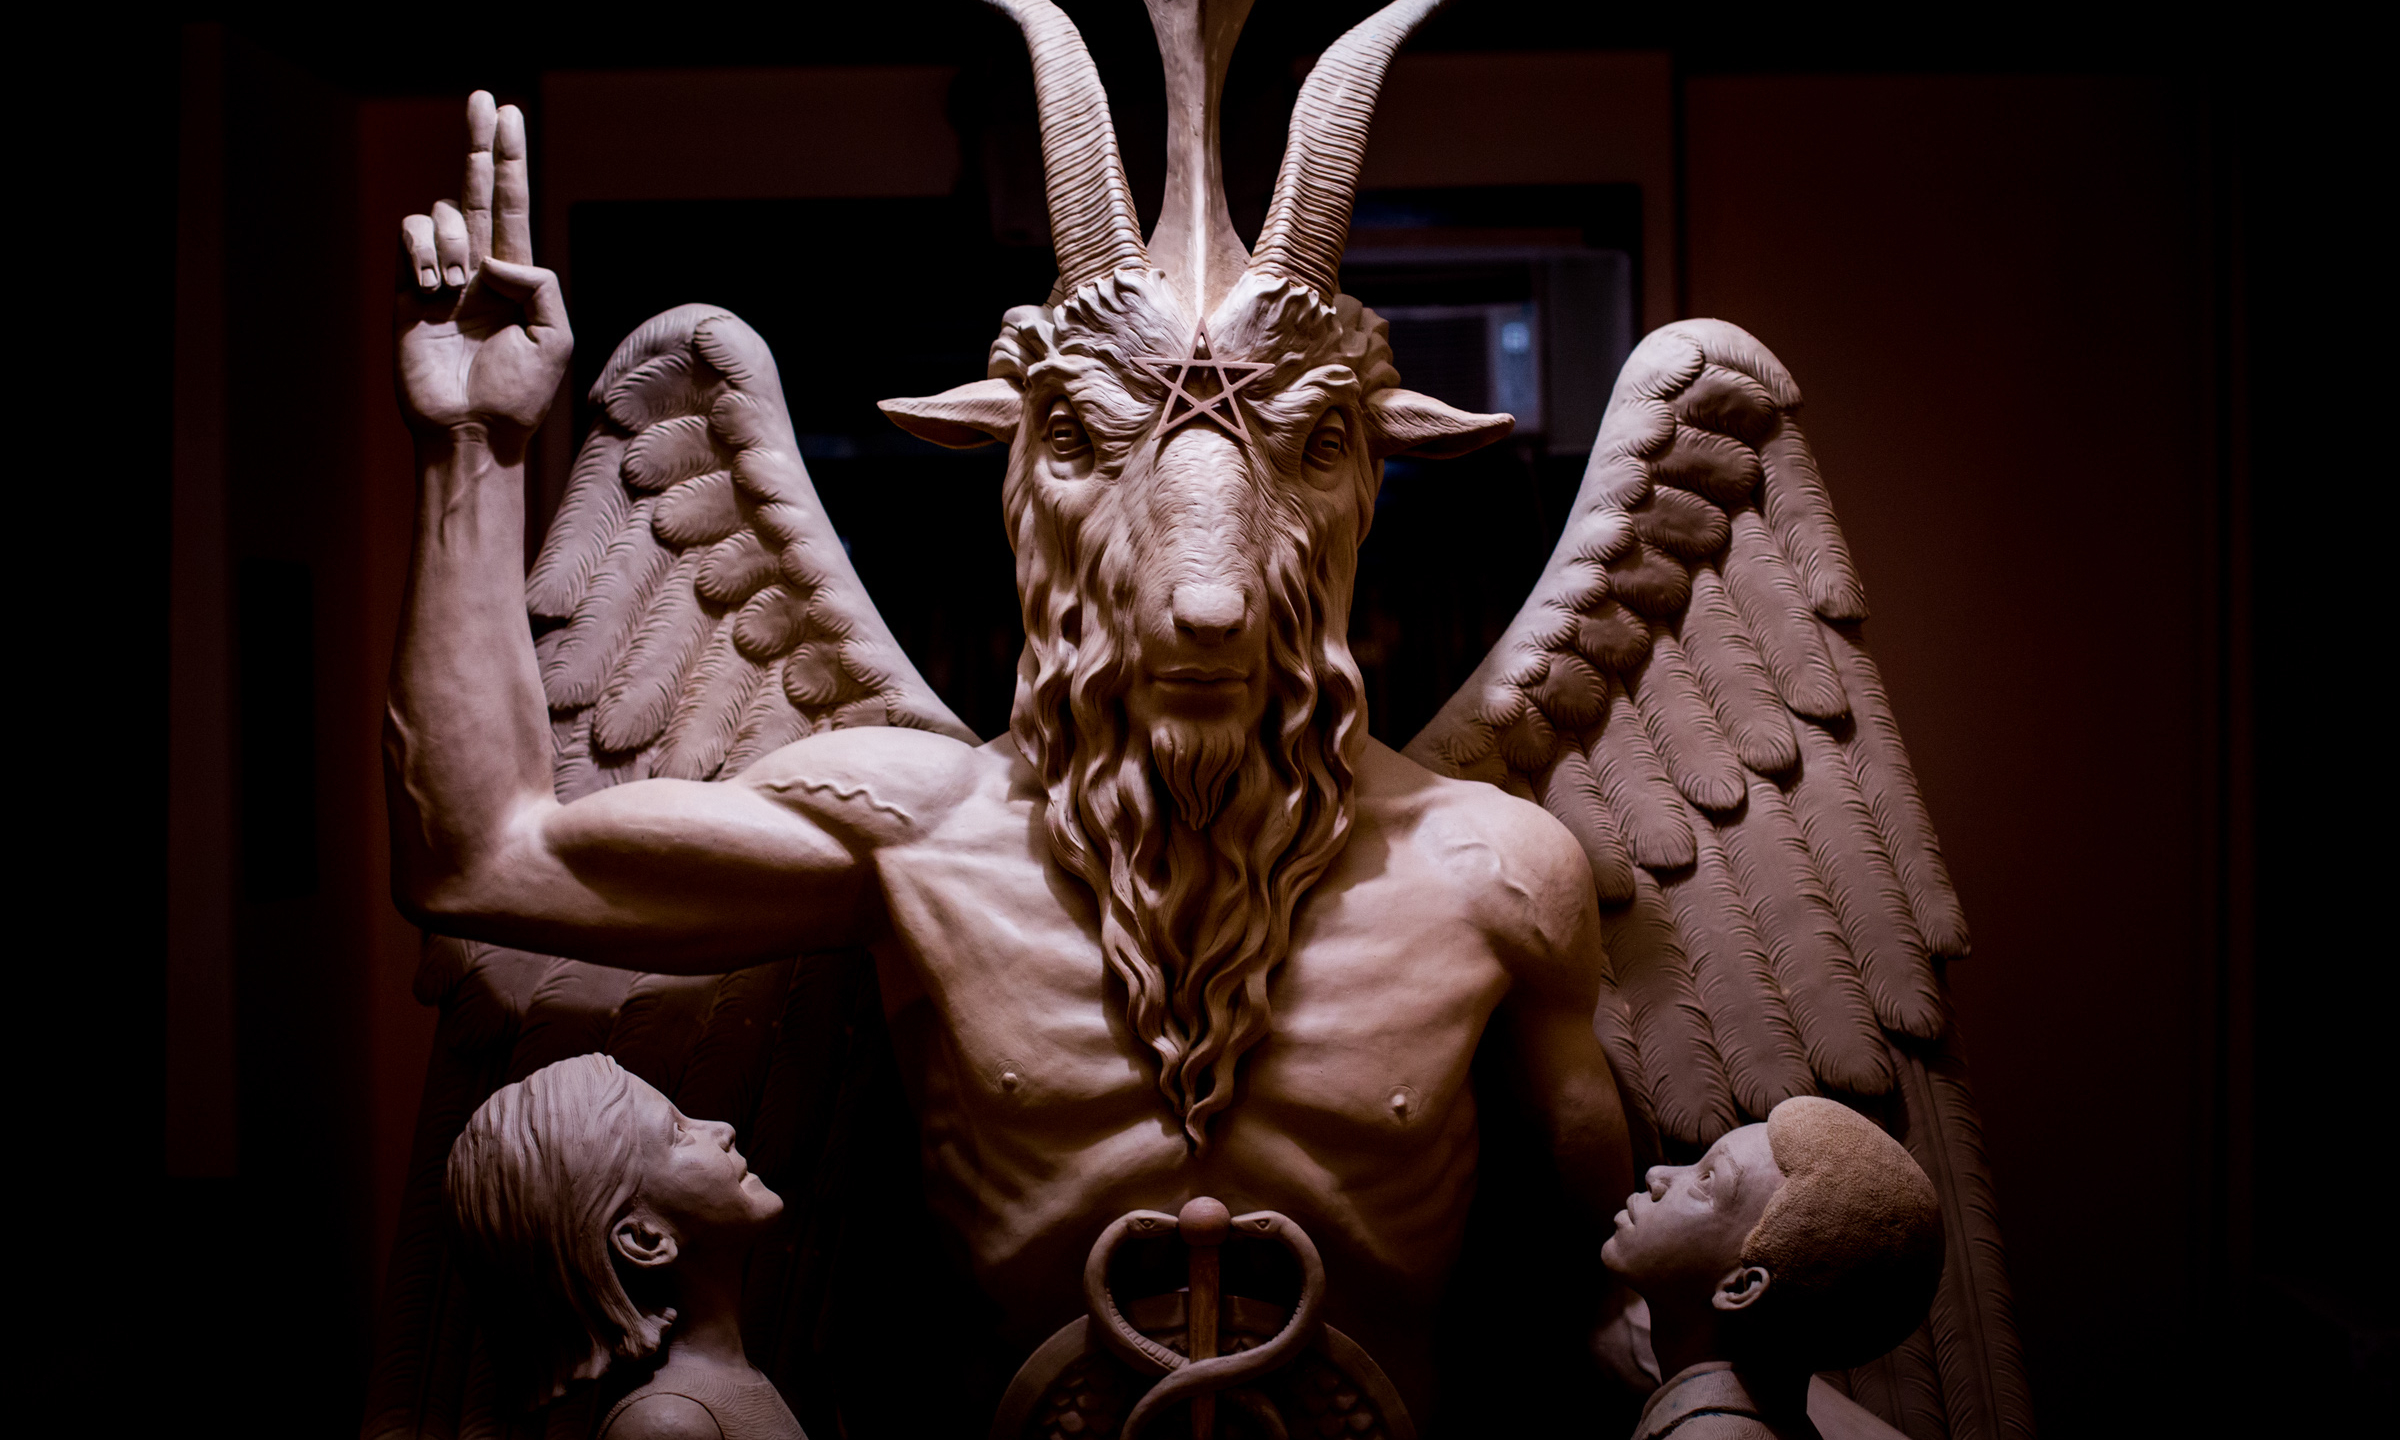 Satanists unveil sculpture in detroit after rejection at oklahoma